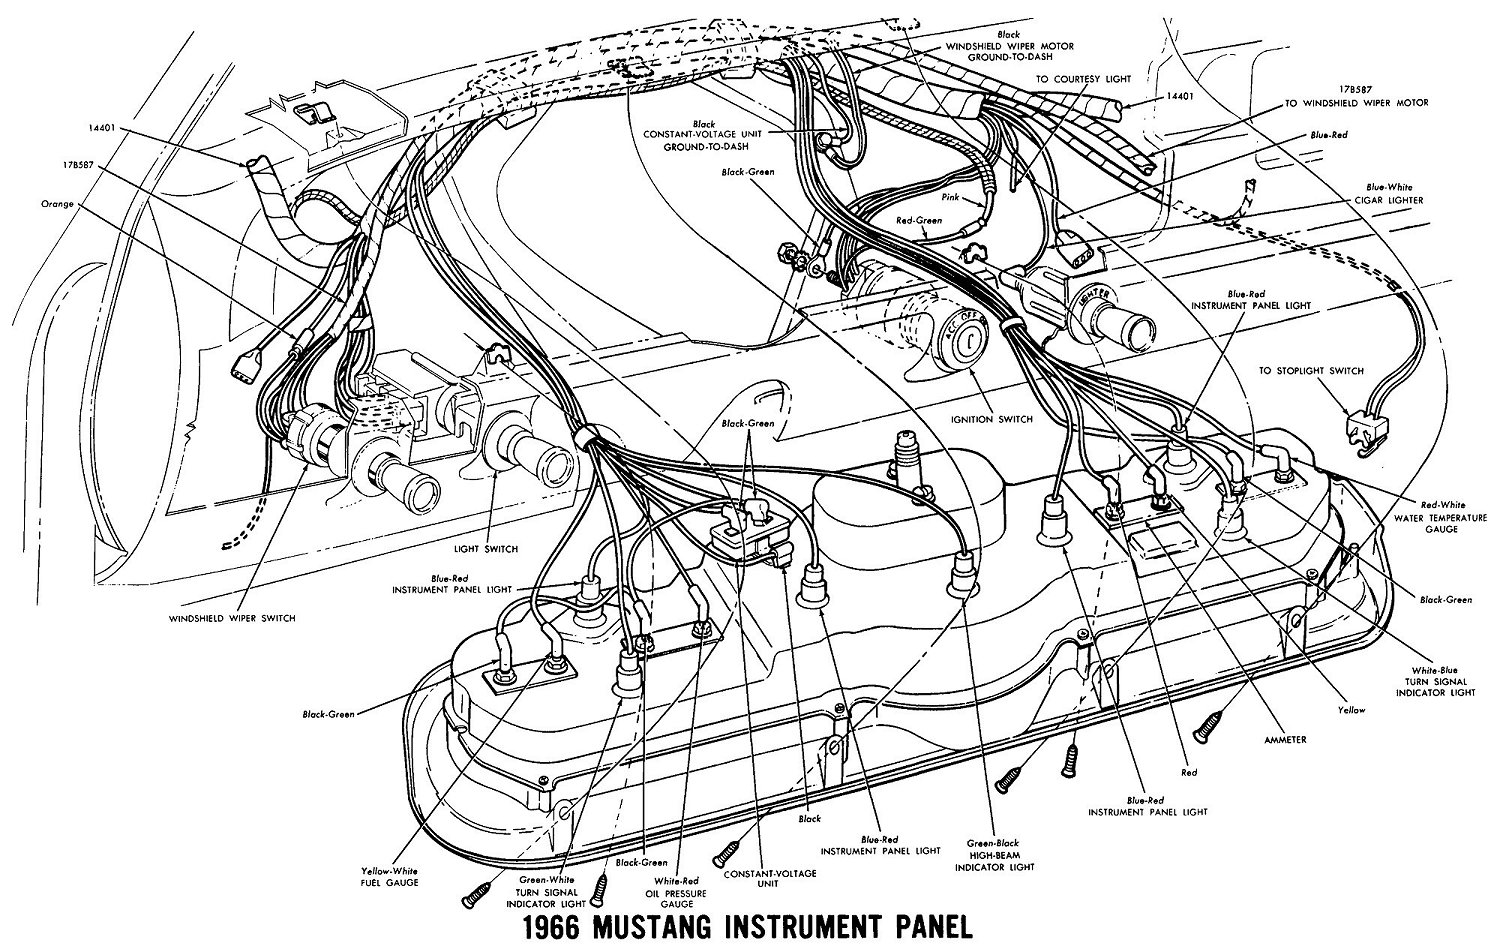 66instr 1966 mustang wiring diagrams average joe restoration 1969 mustang instrument cluster wiring diagram at n-0.co